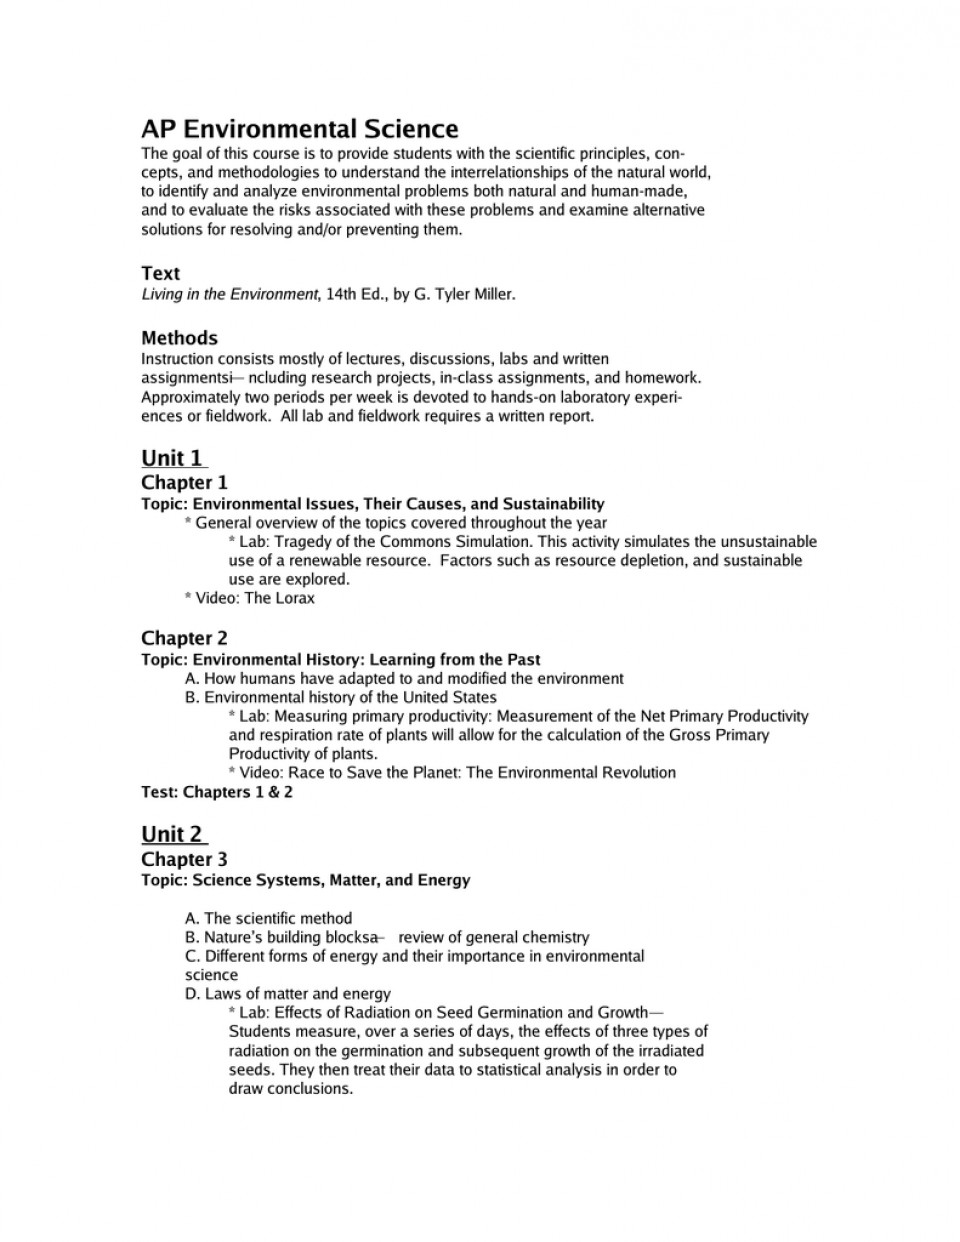 021 Ap Environmental Science Research Paper Topics 002102029 1 Fearsome 960